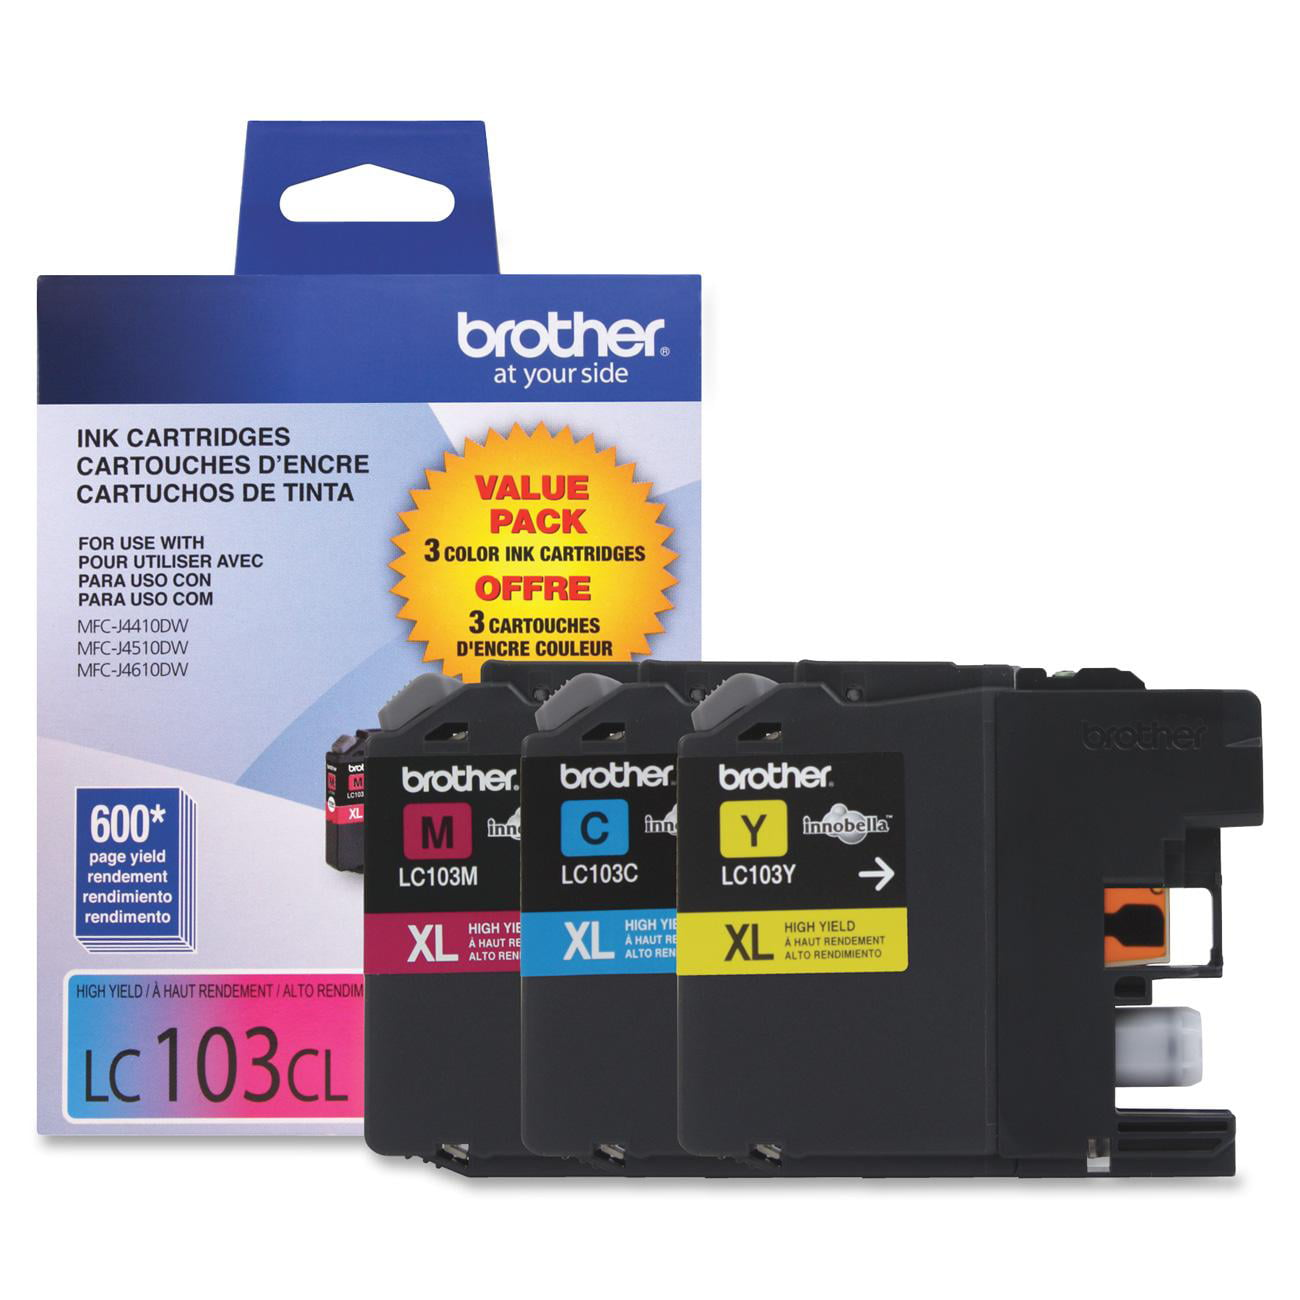 Brother Ink Cartridges Refill Kit Data Print Dp 40 For Canon Black Cartridge Lc1033pks Innobella High Yield Cyan Magenta Yellow 3